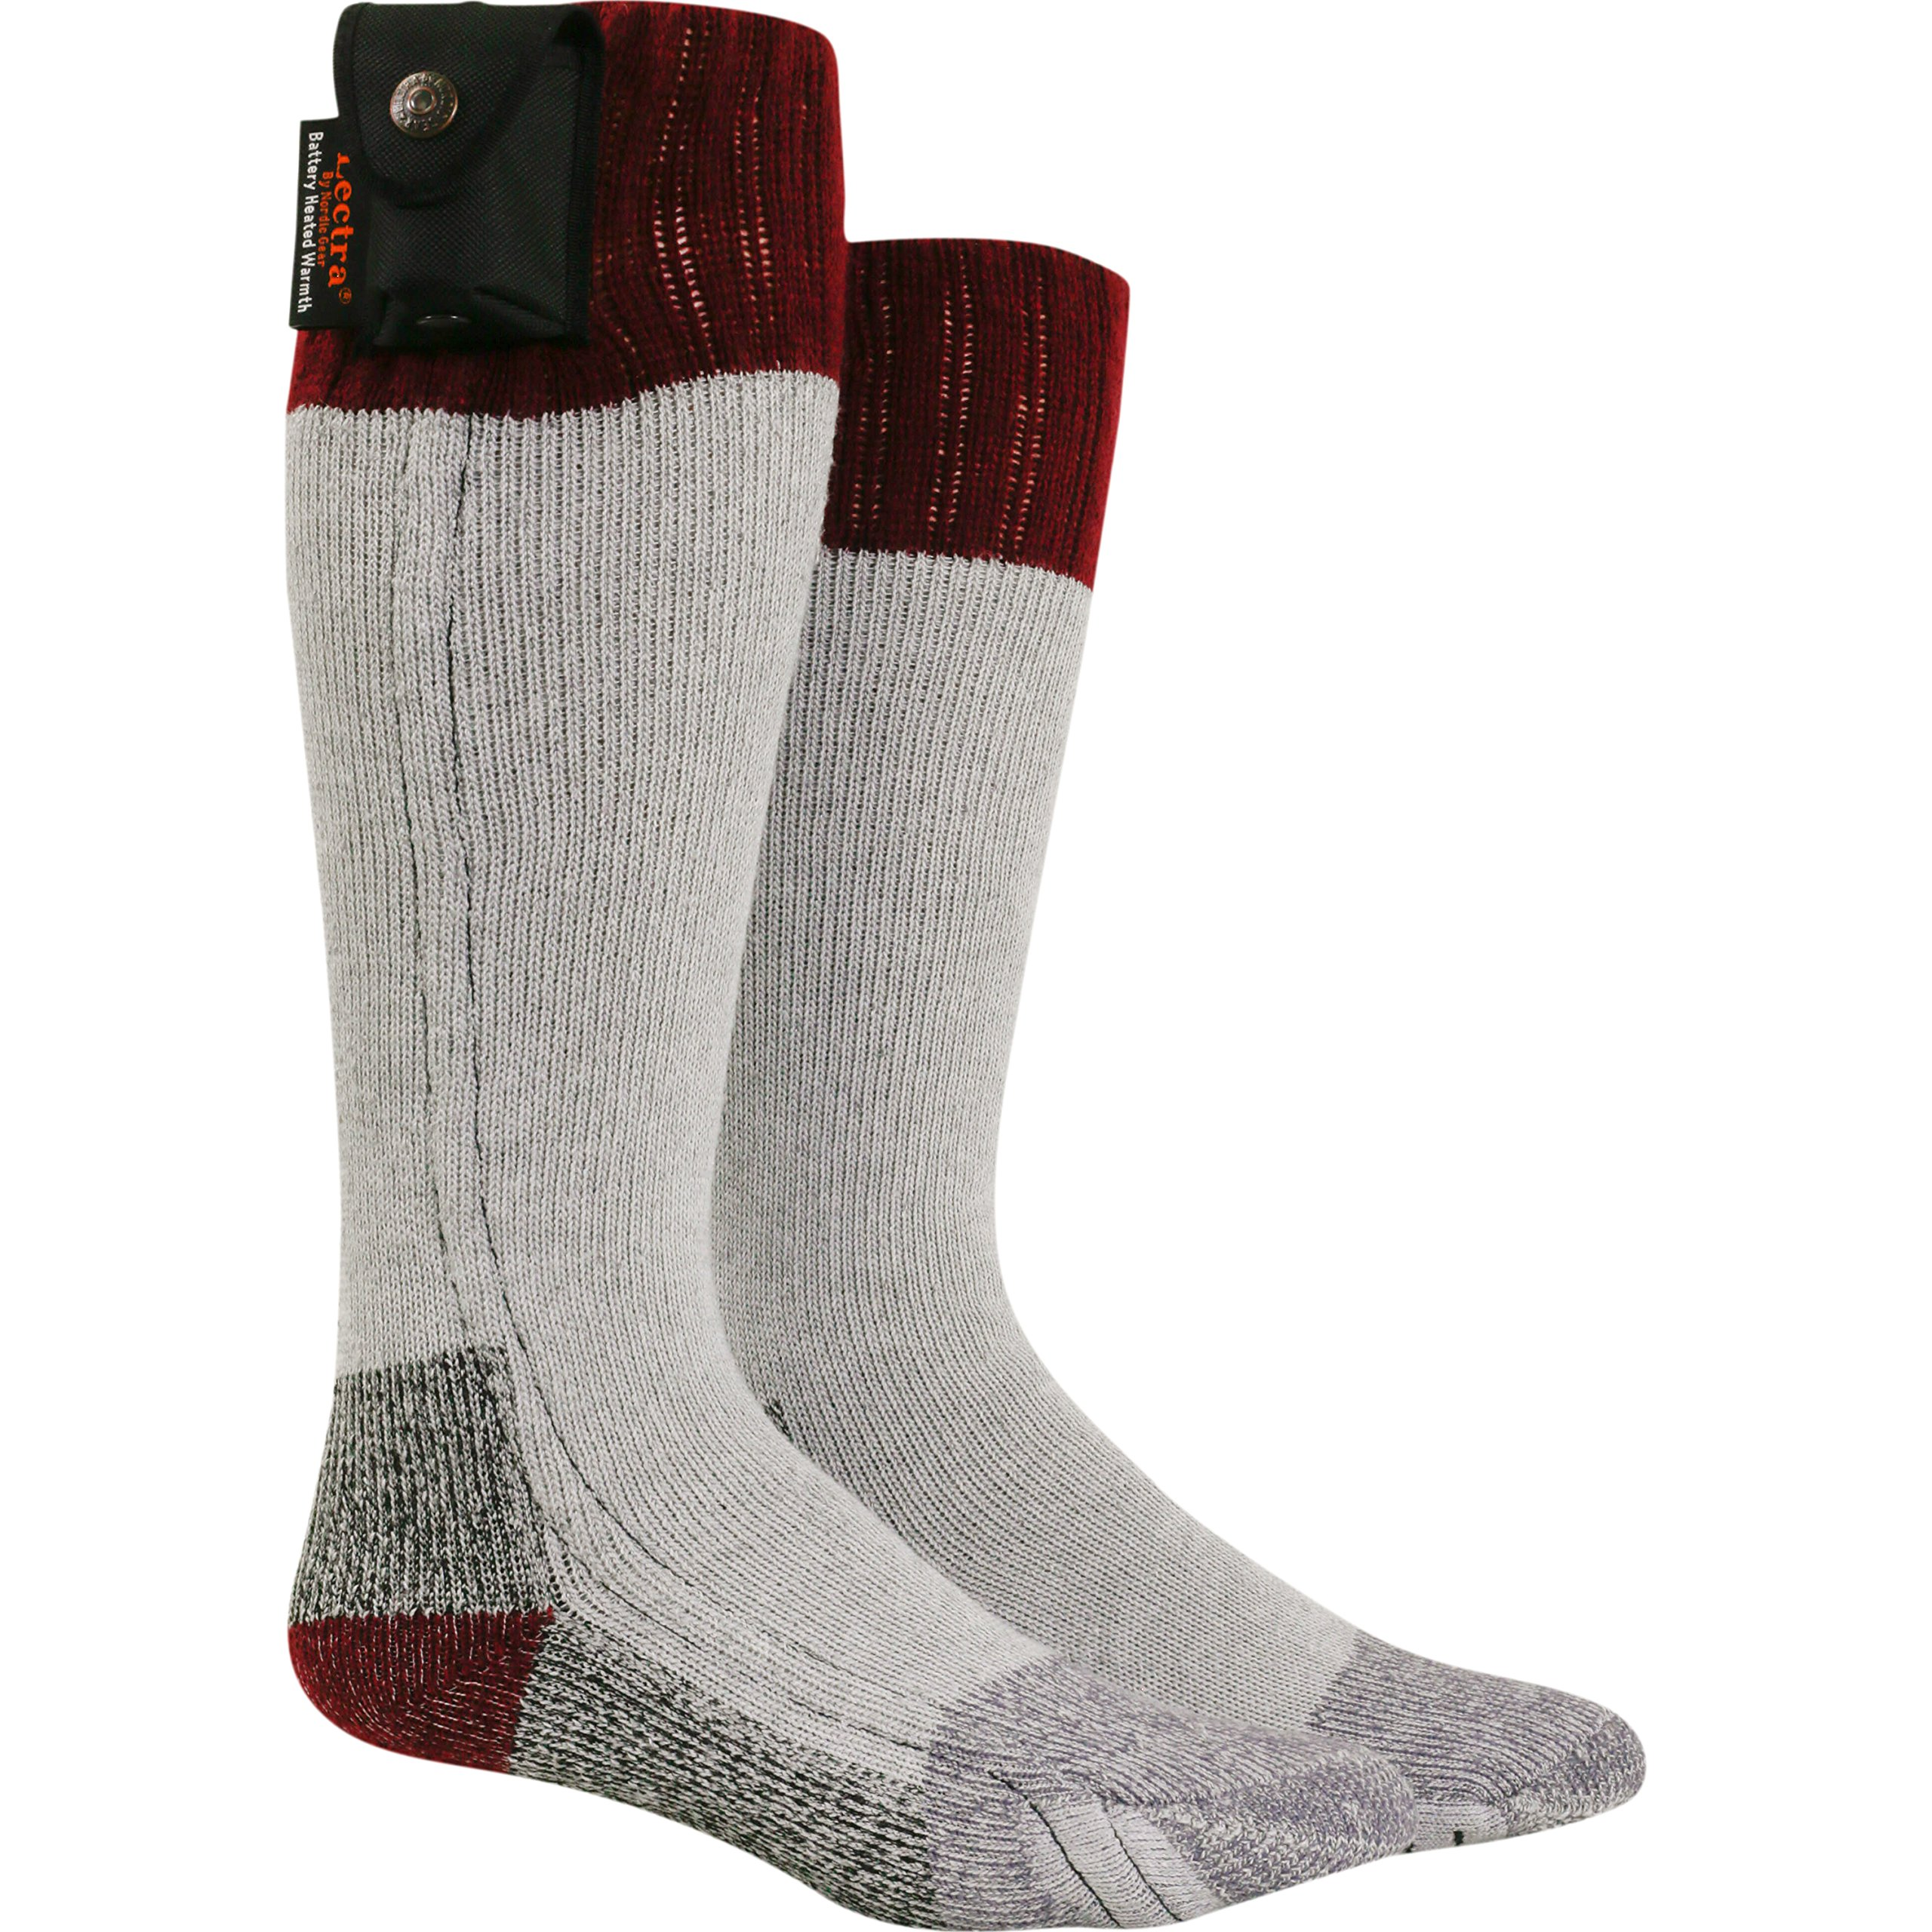 Nordic Gear Unisex Lectra Sox-Electric Battery Heated Socks - Large/X-Large - Maroon